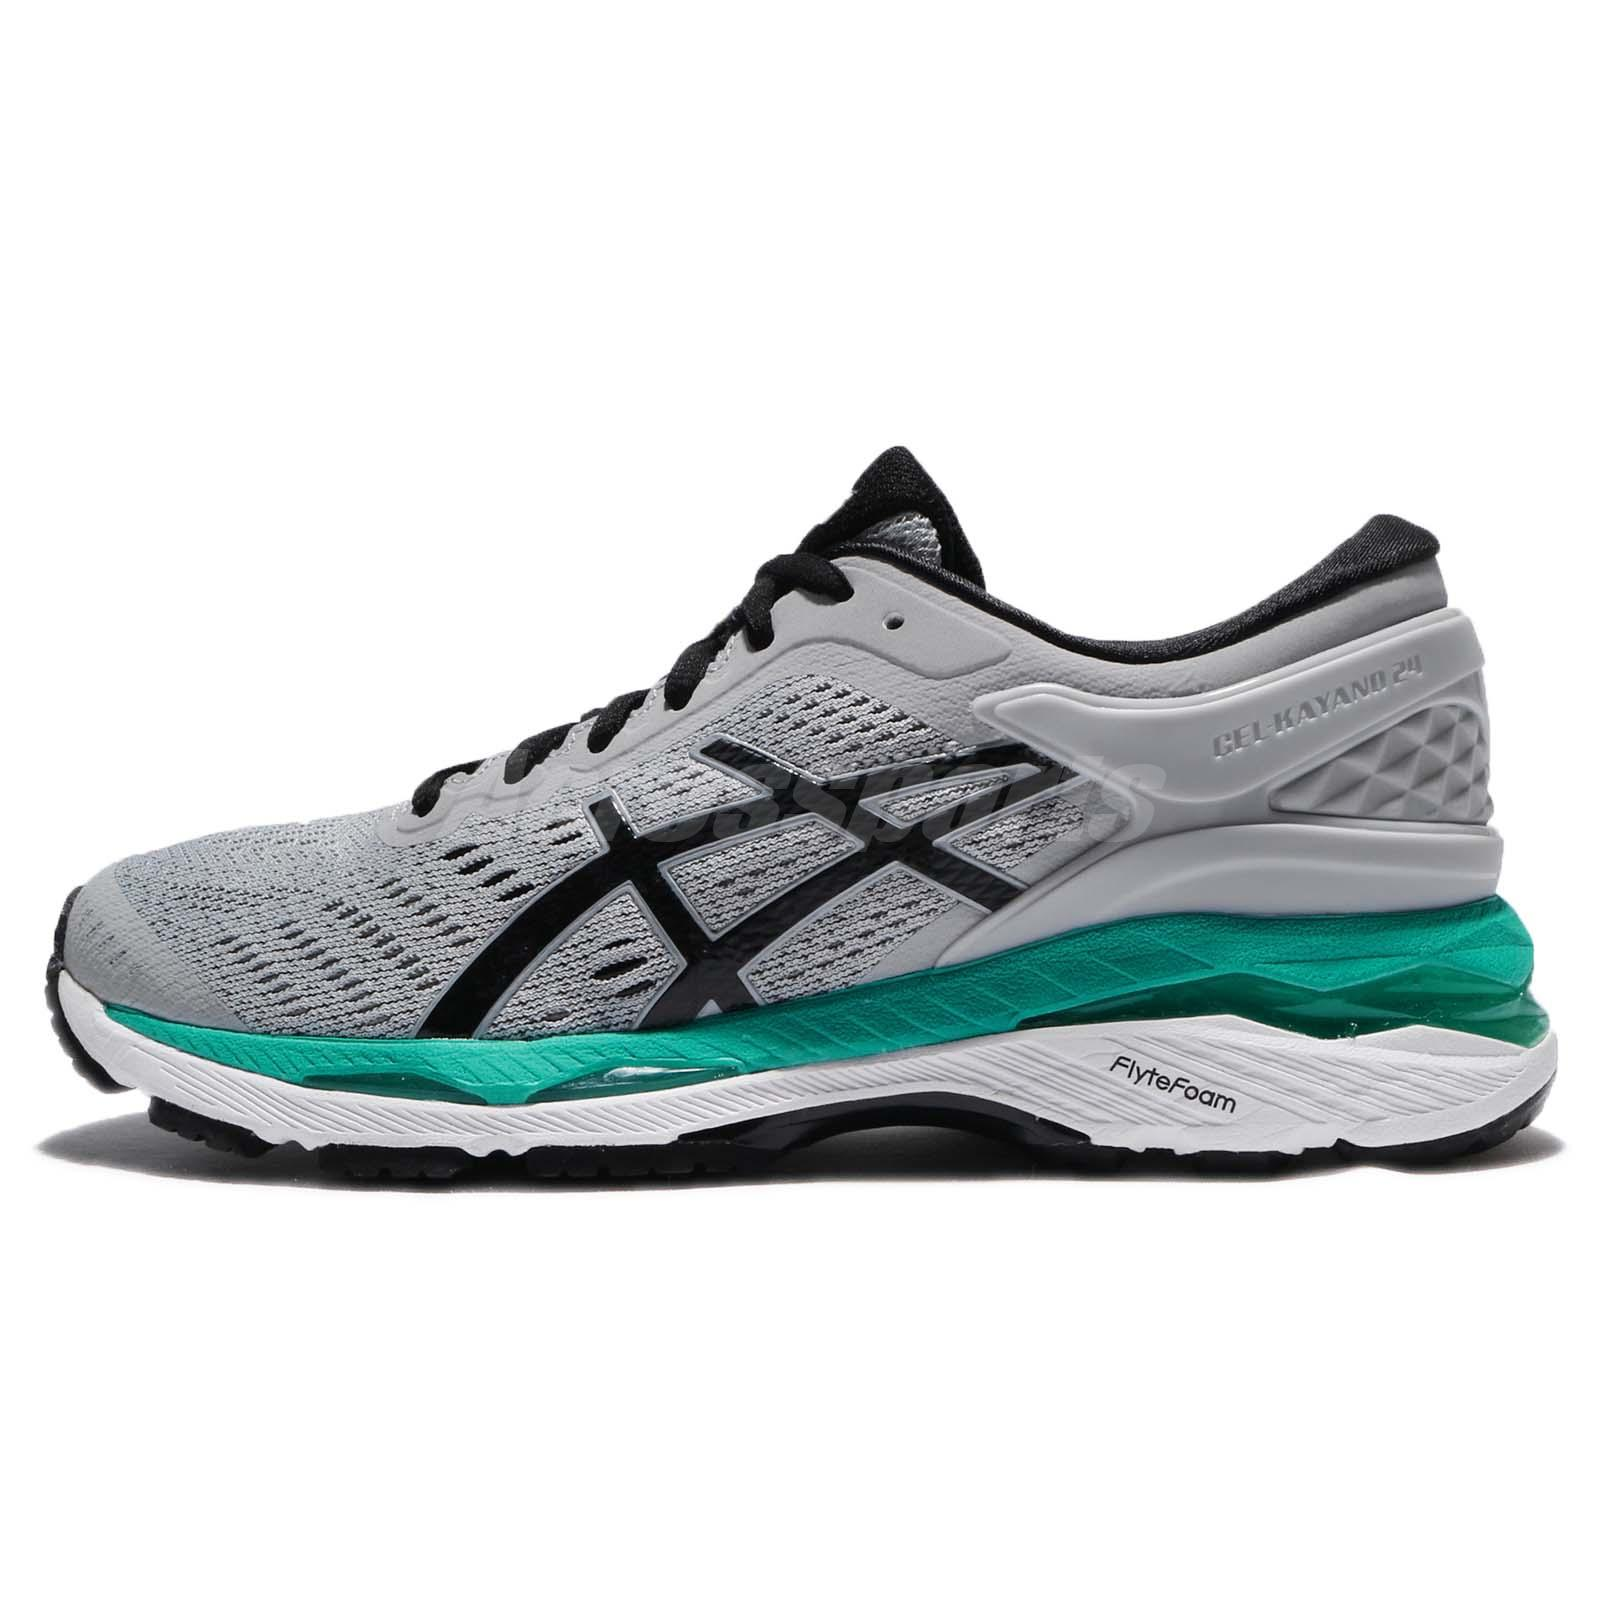 new asics kayano 24